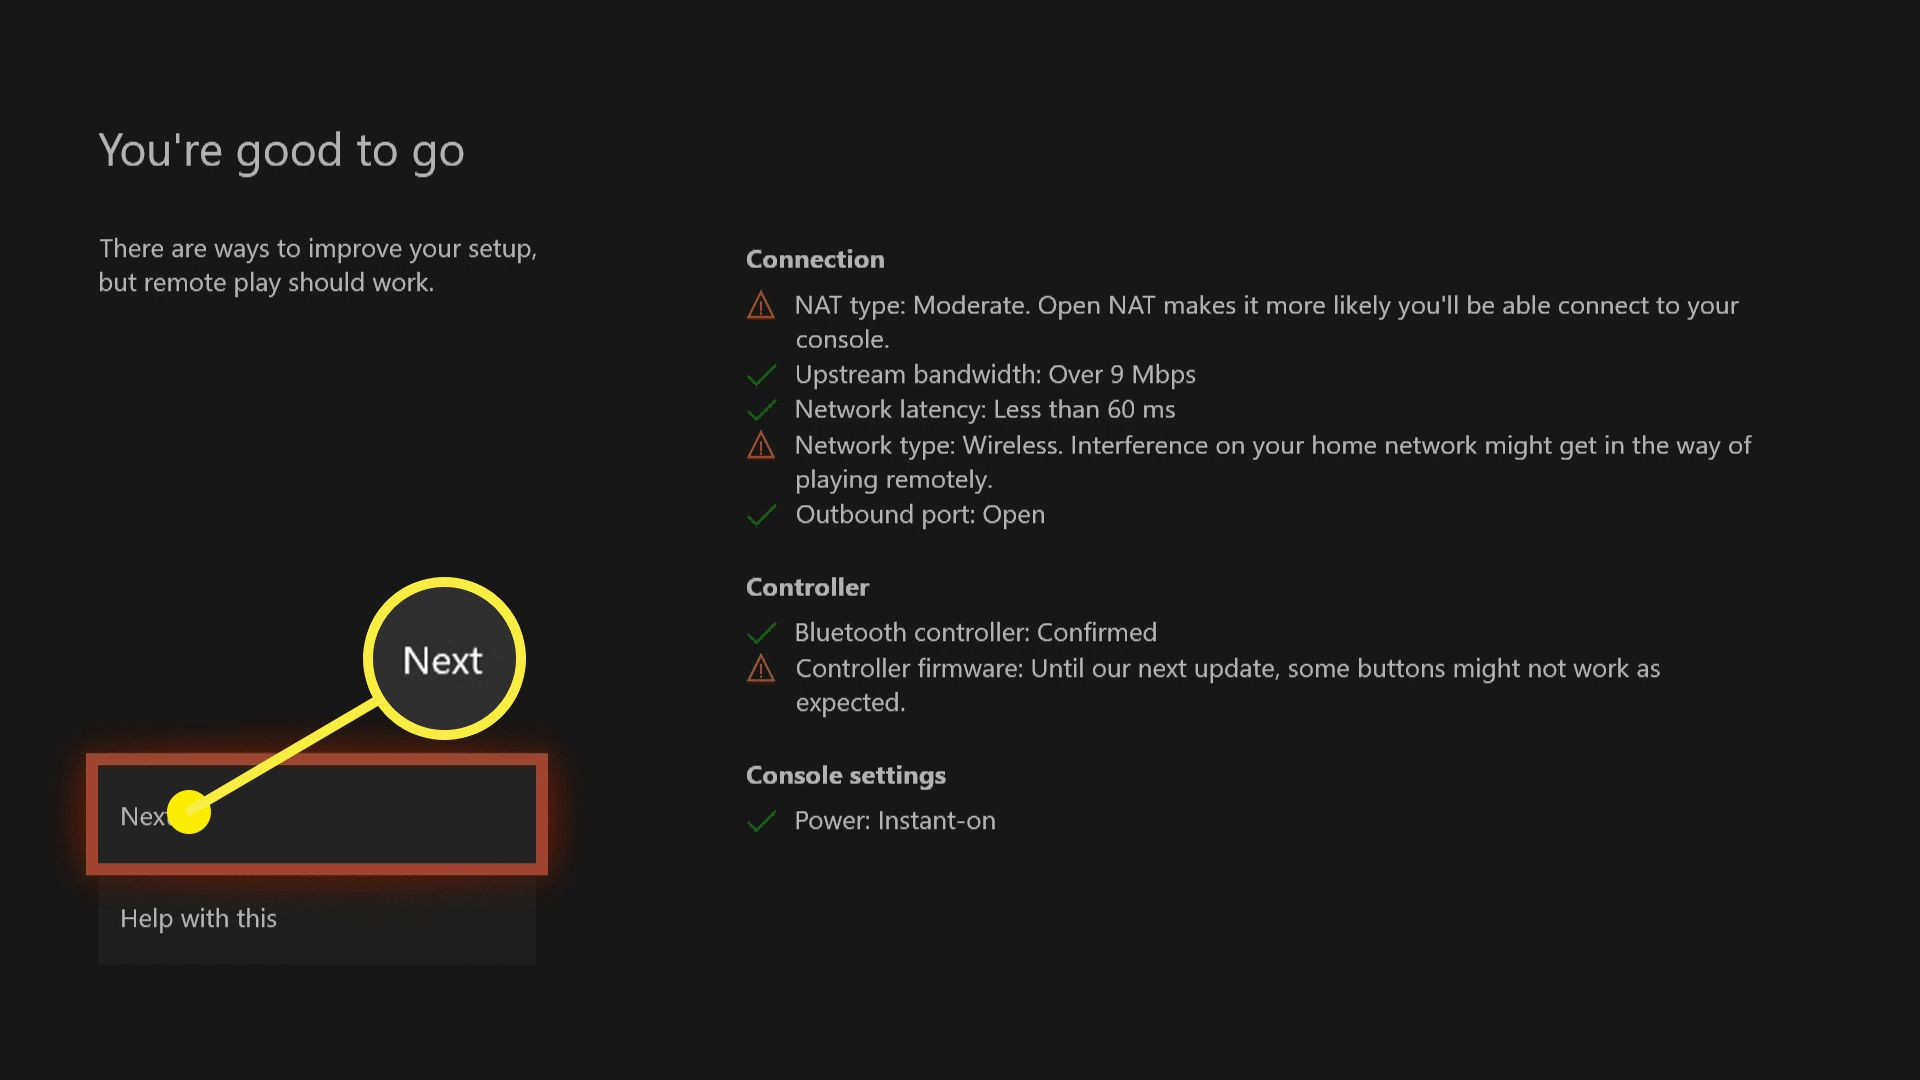 A screenshot of an Xbox One showing that it is ready for remote play.